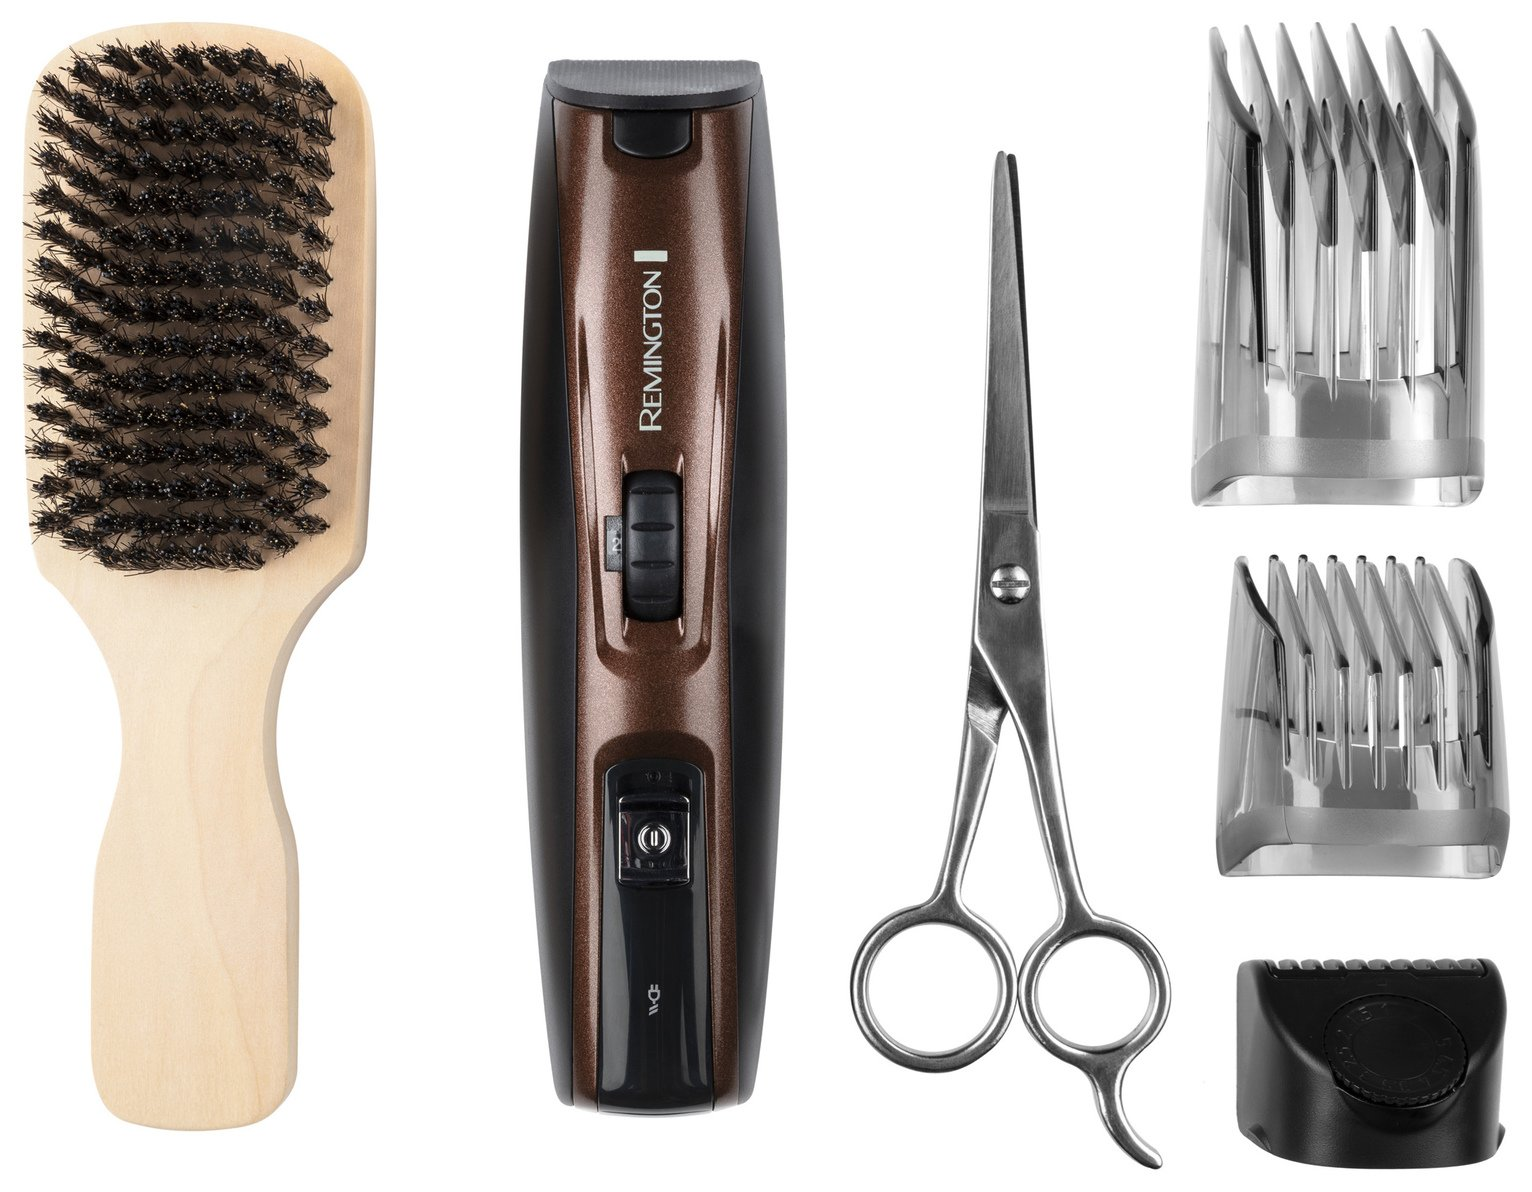 Remington Beard Kit with XL Adjustable Comb MB4045